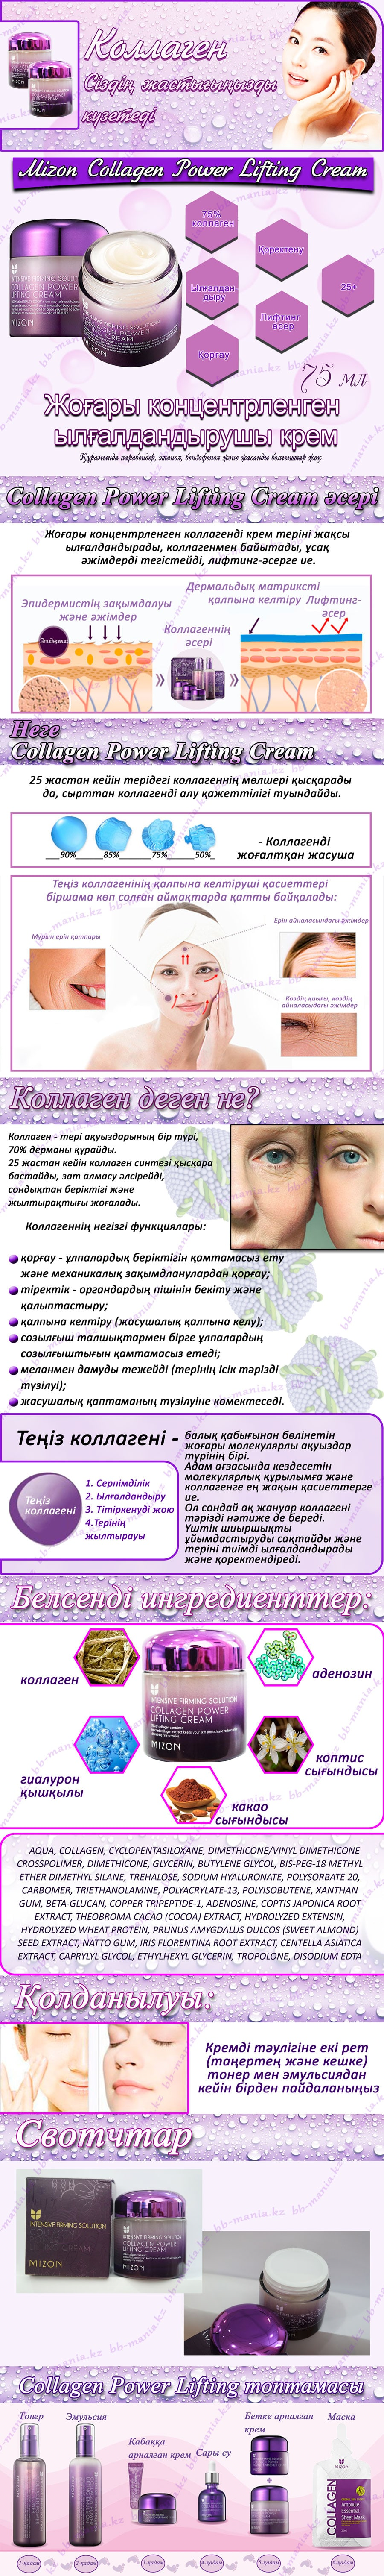 Mizon-Collagen-Power-Lifting-Cream-кз-min